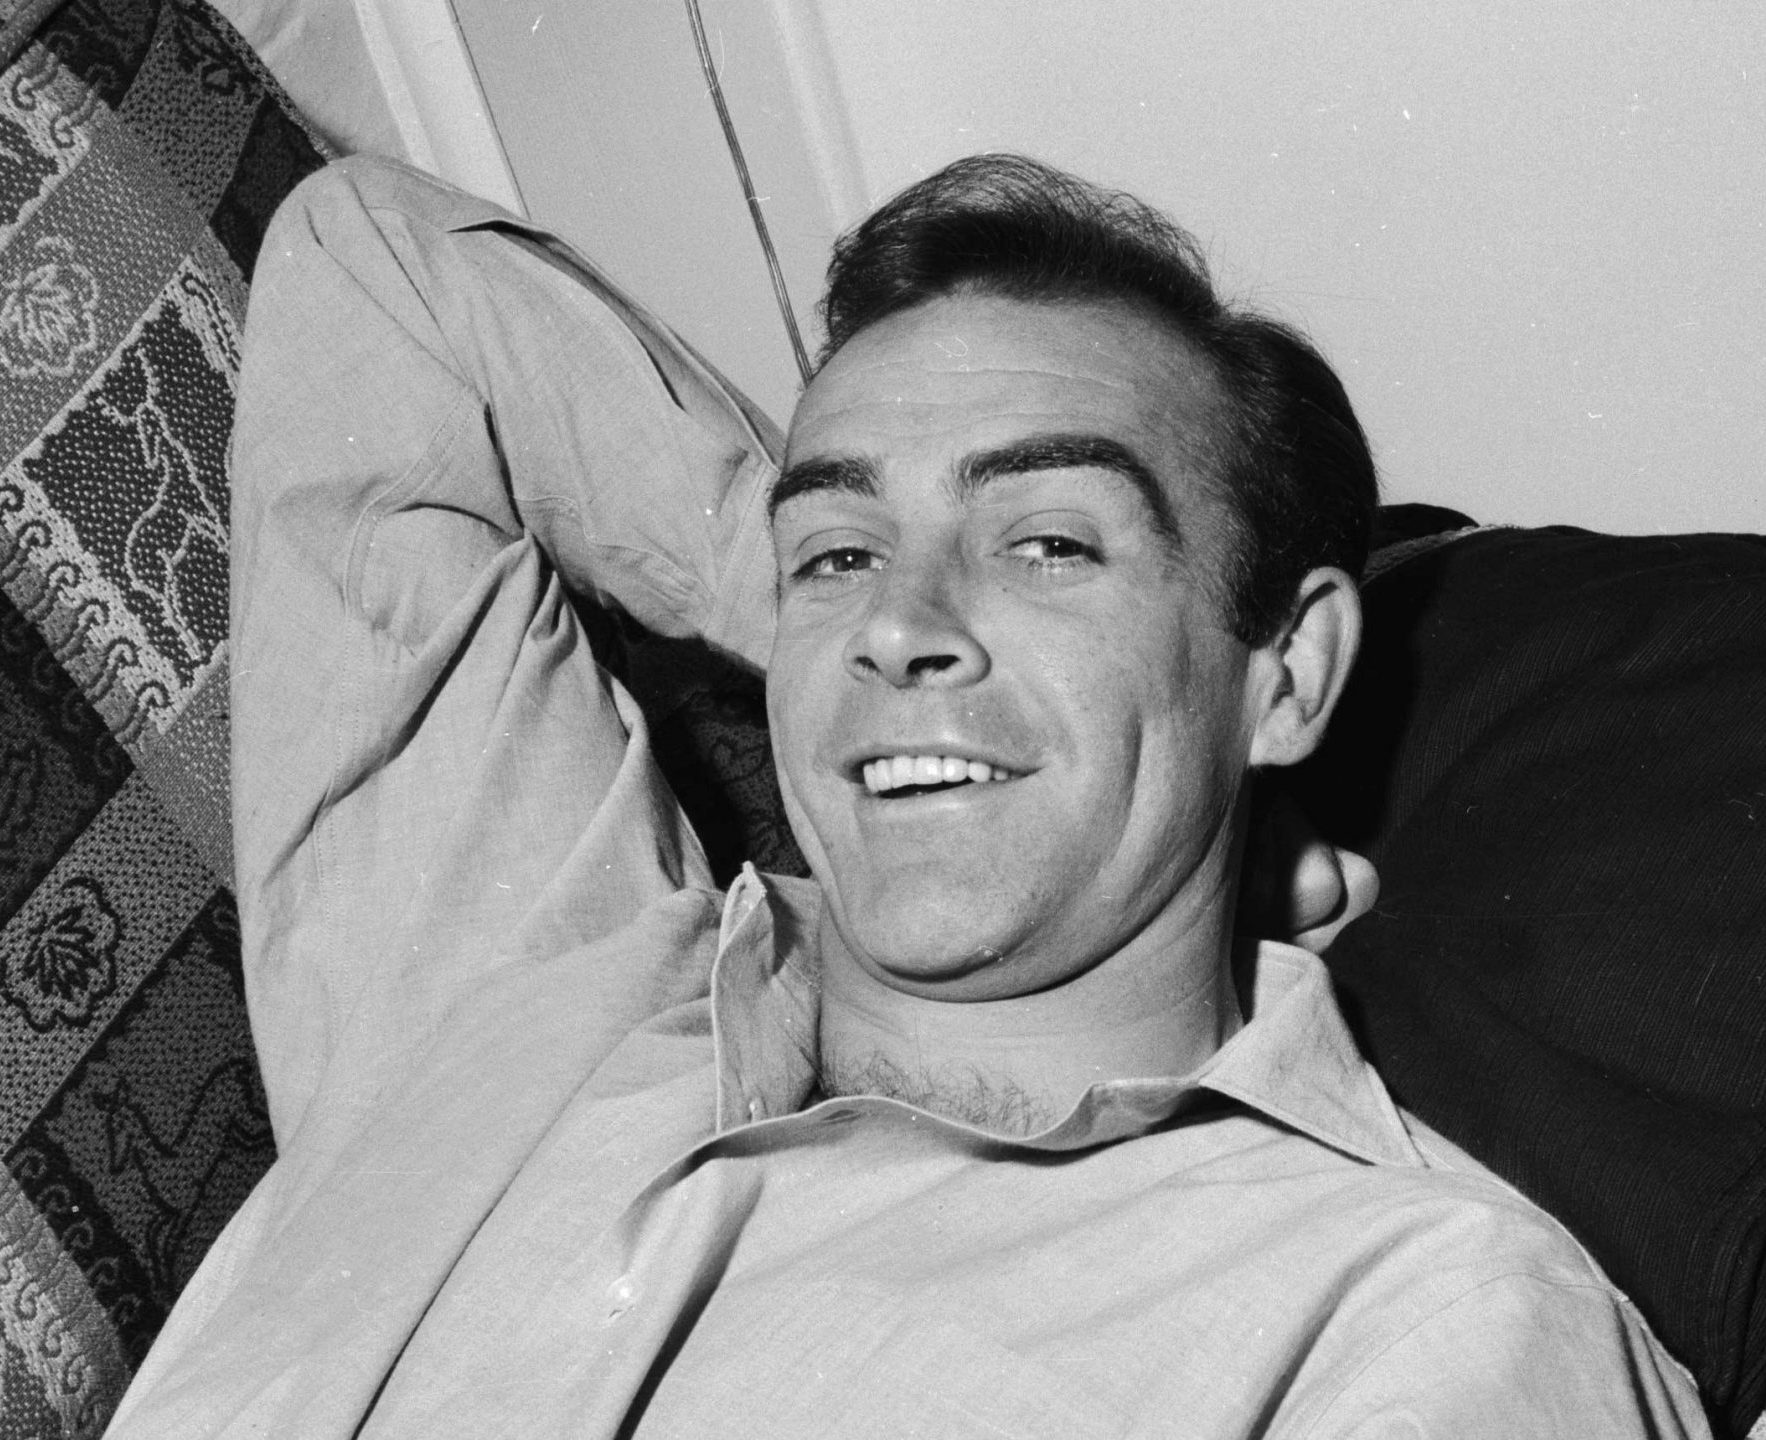 Tout SeanConnery GettyImages 3166172 scaled e1604327823324 20 Things You Never Knew About Sean Connery